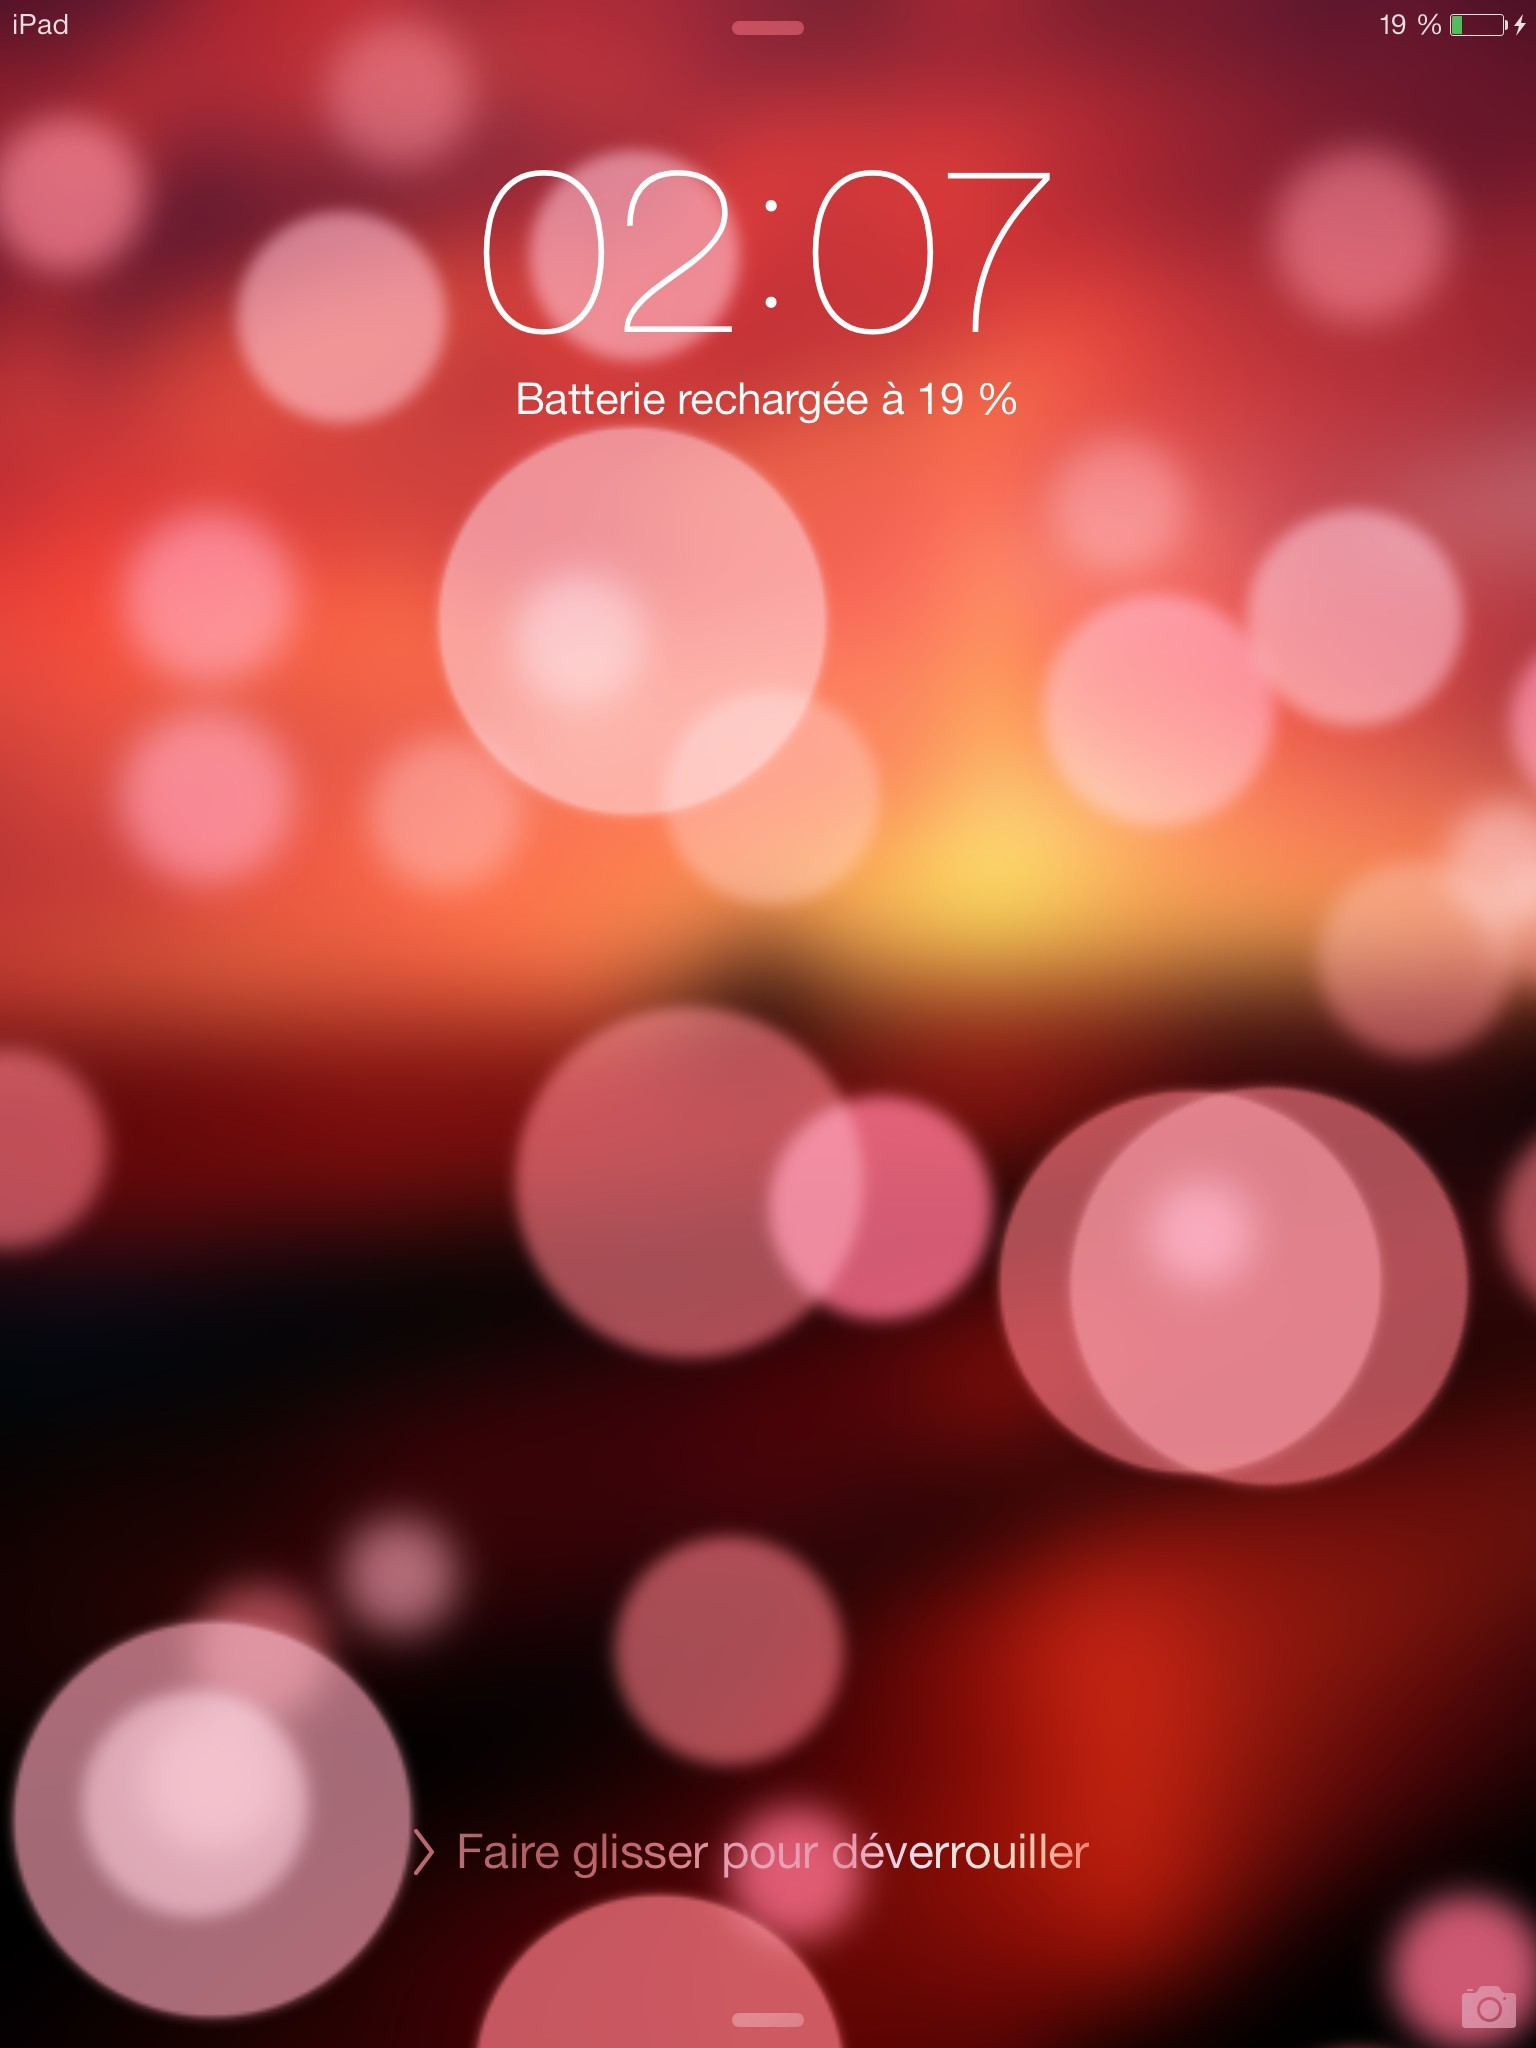 1536x2048 08 IPad HD Dynamic Wallpaper For IOS 7